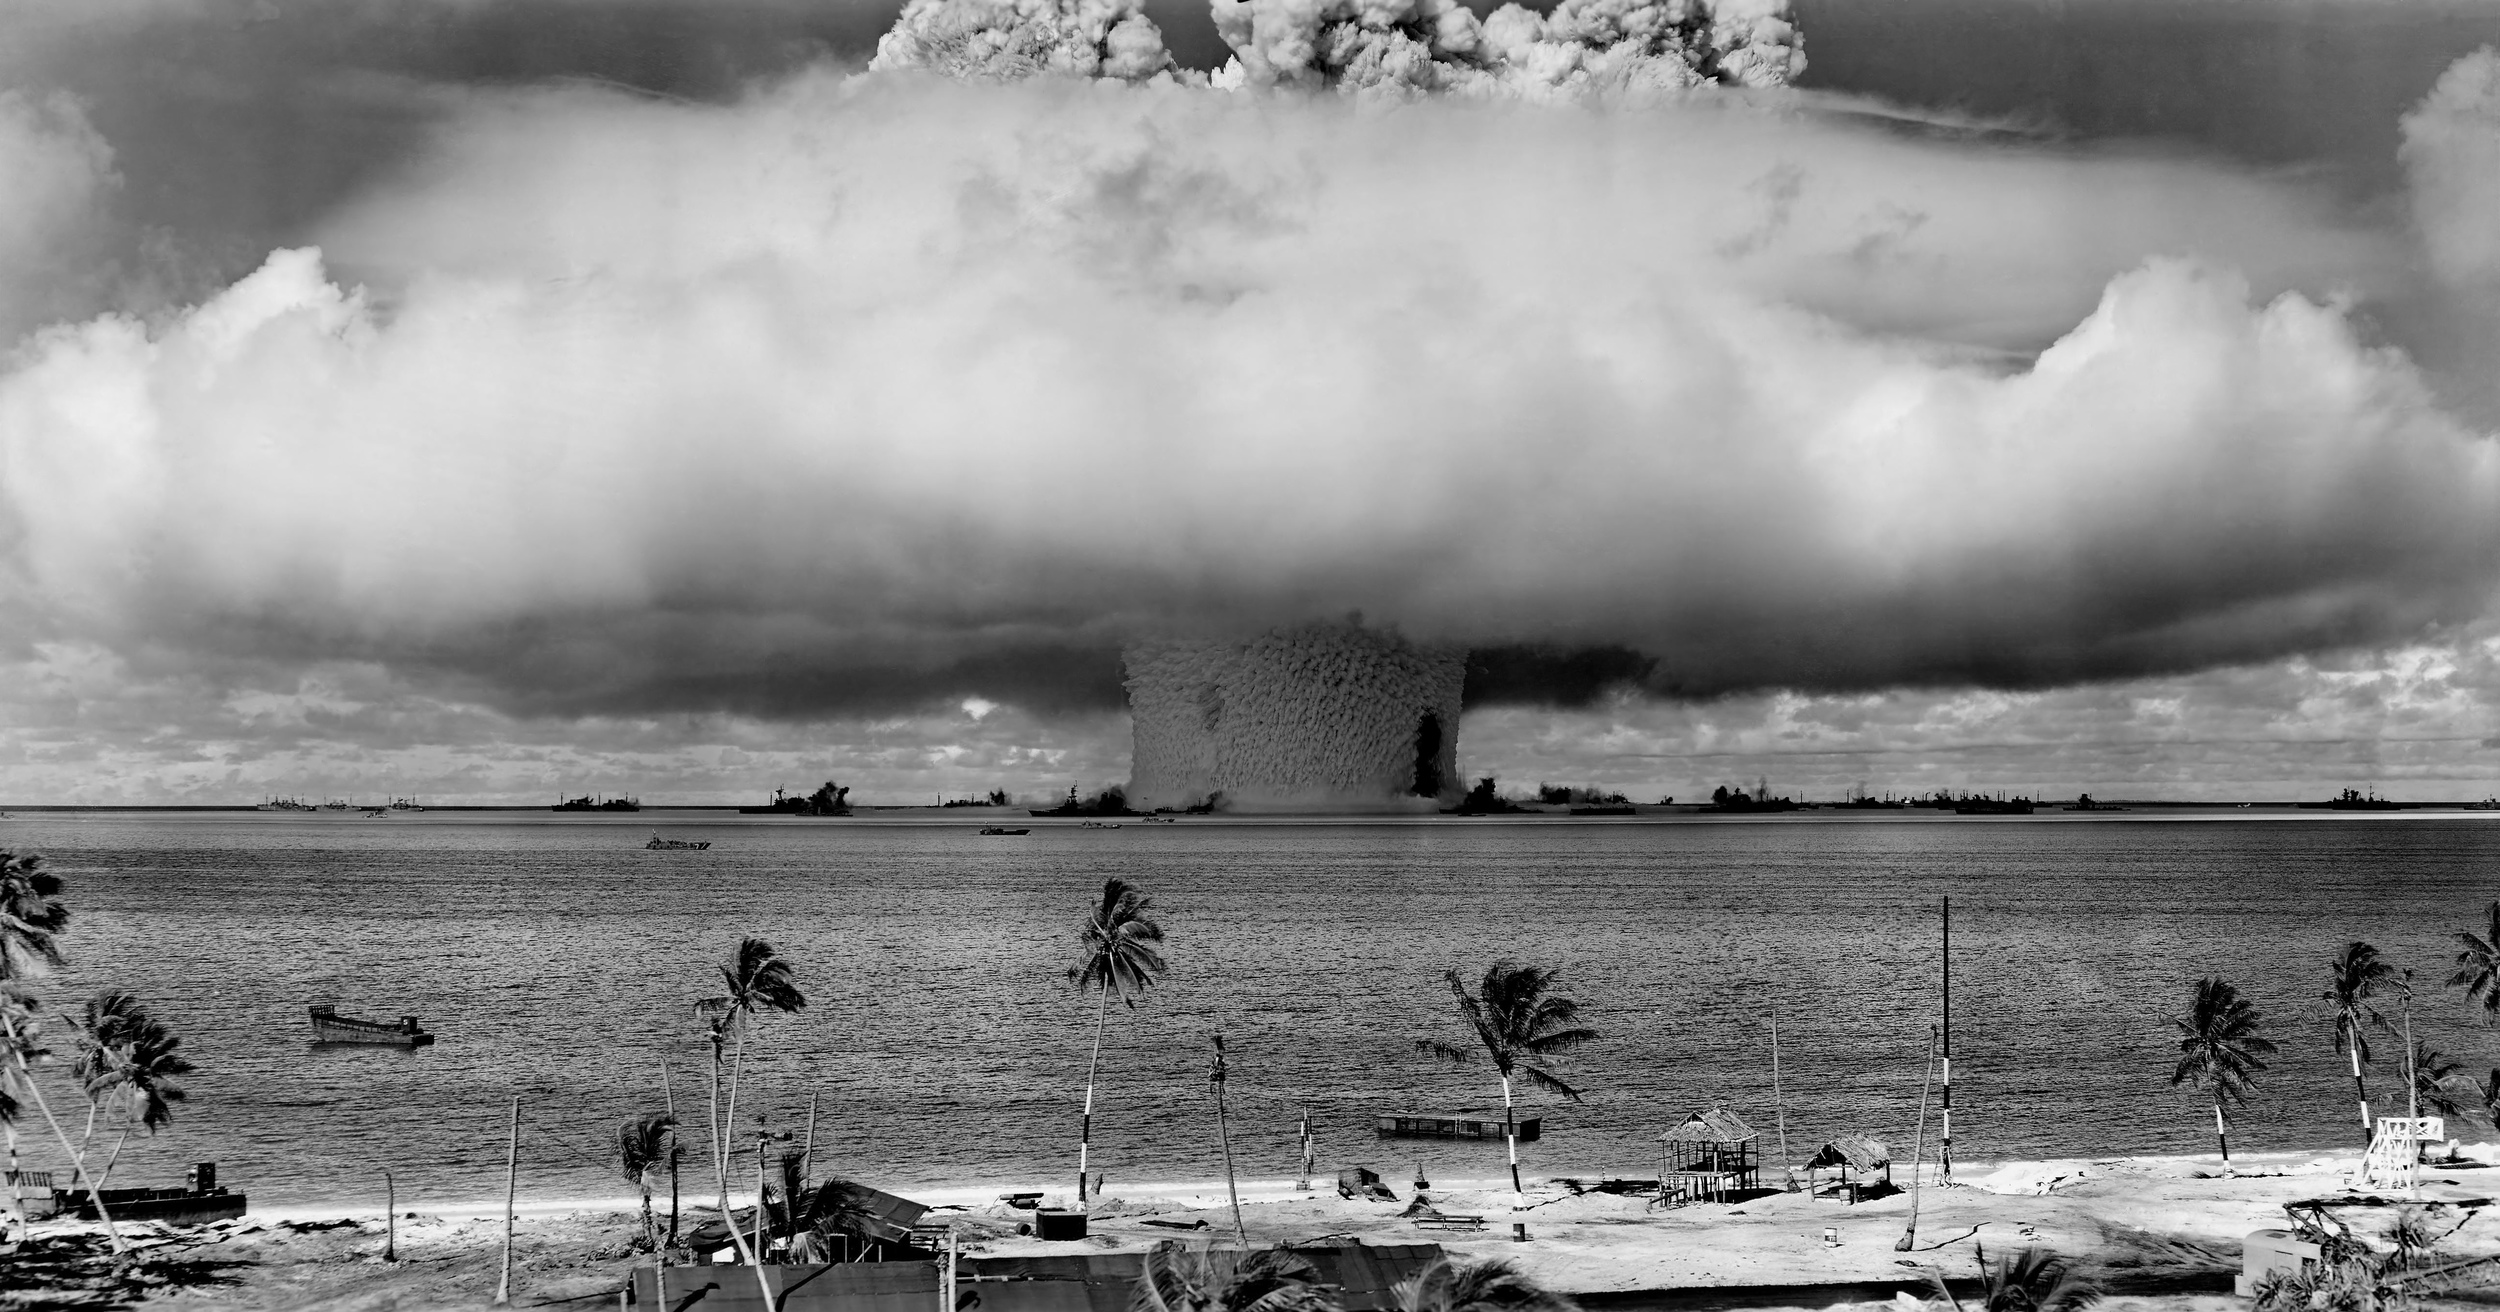 Operation Crossroads Baker Shot